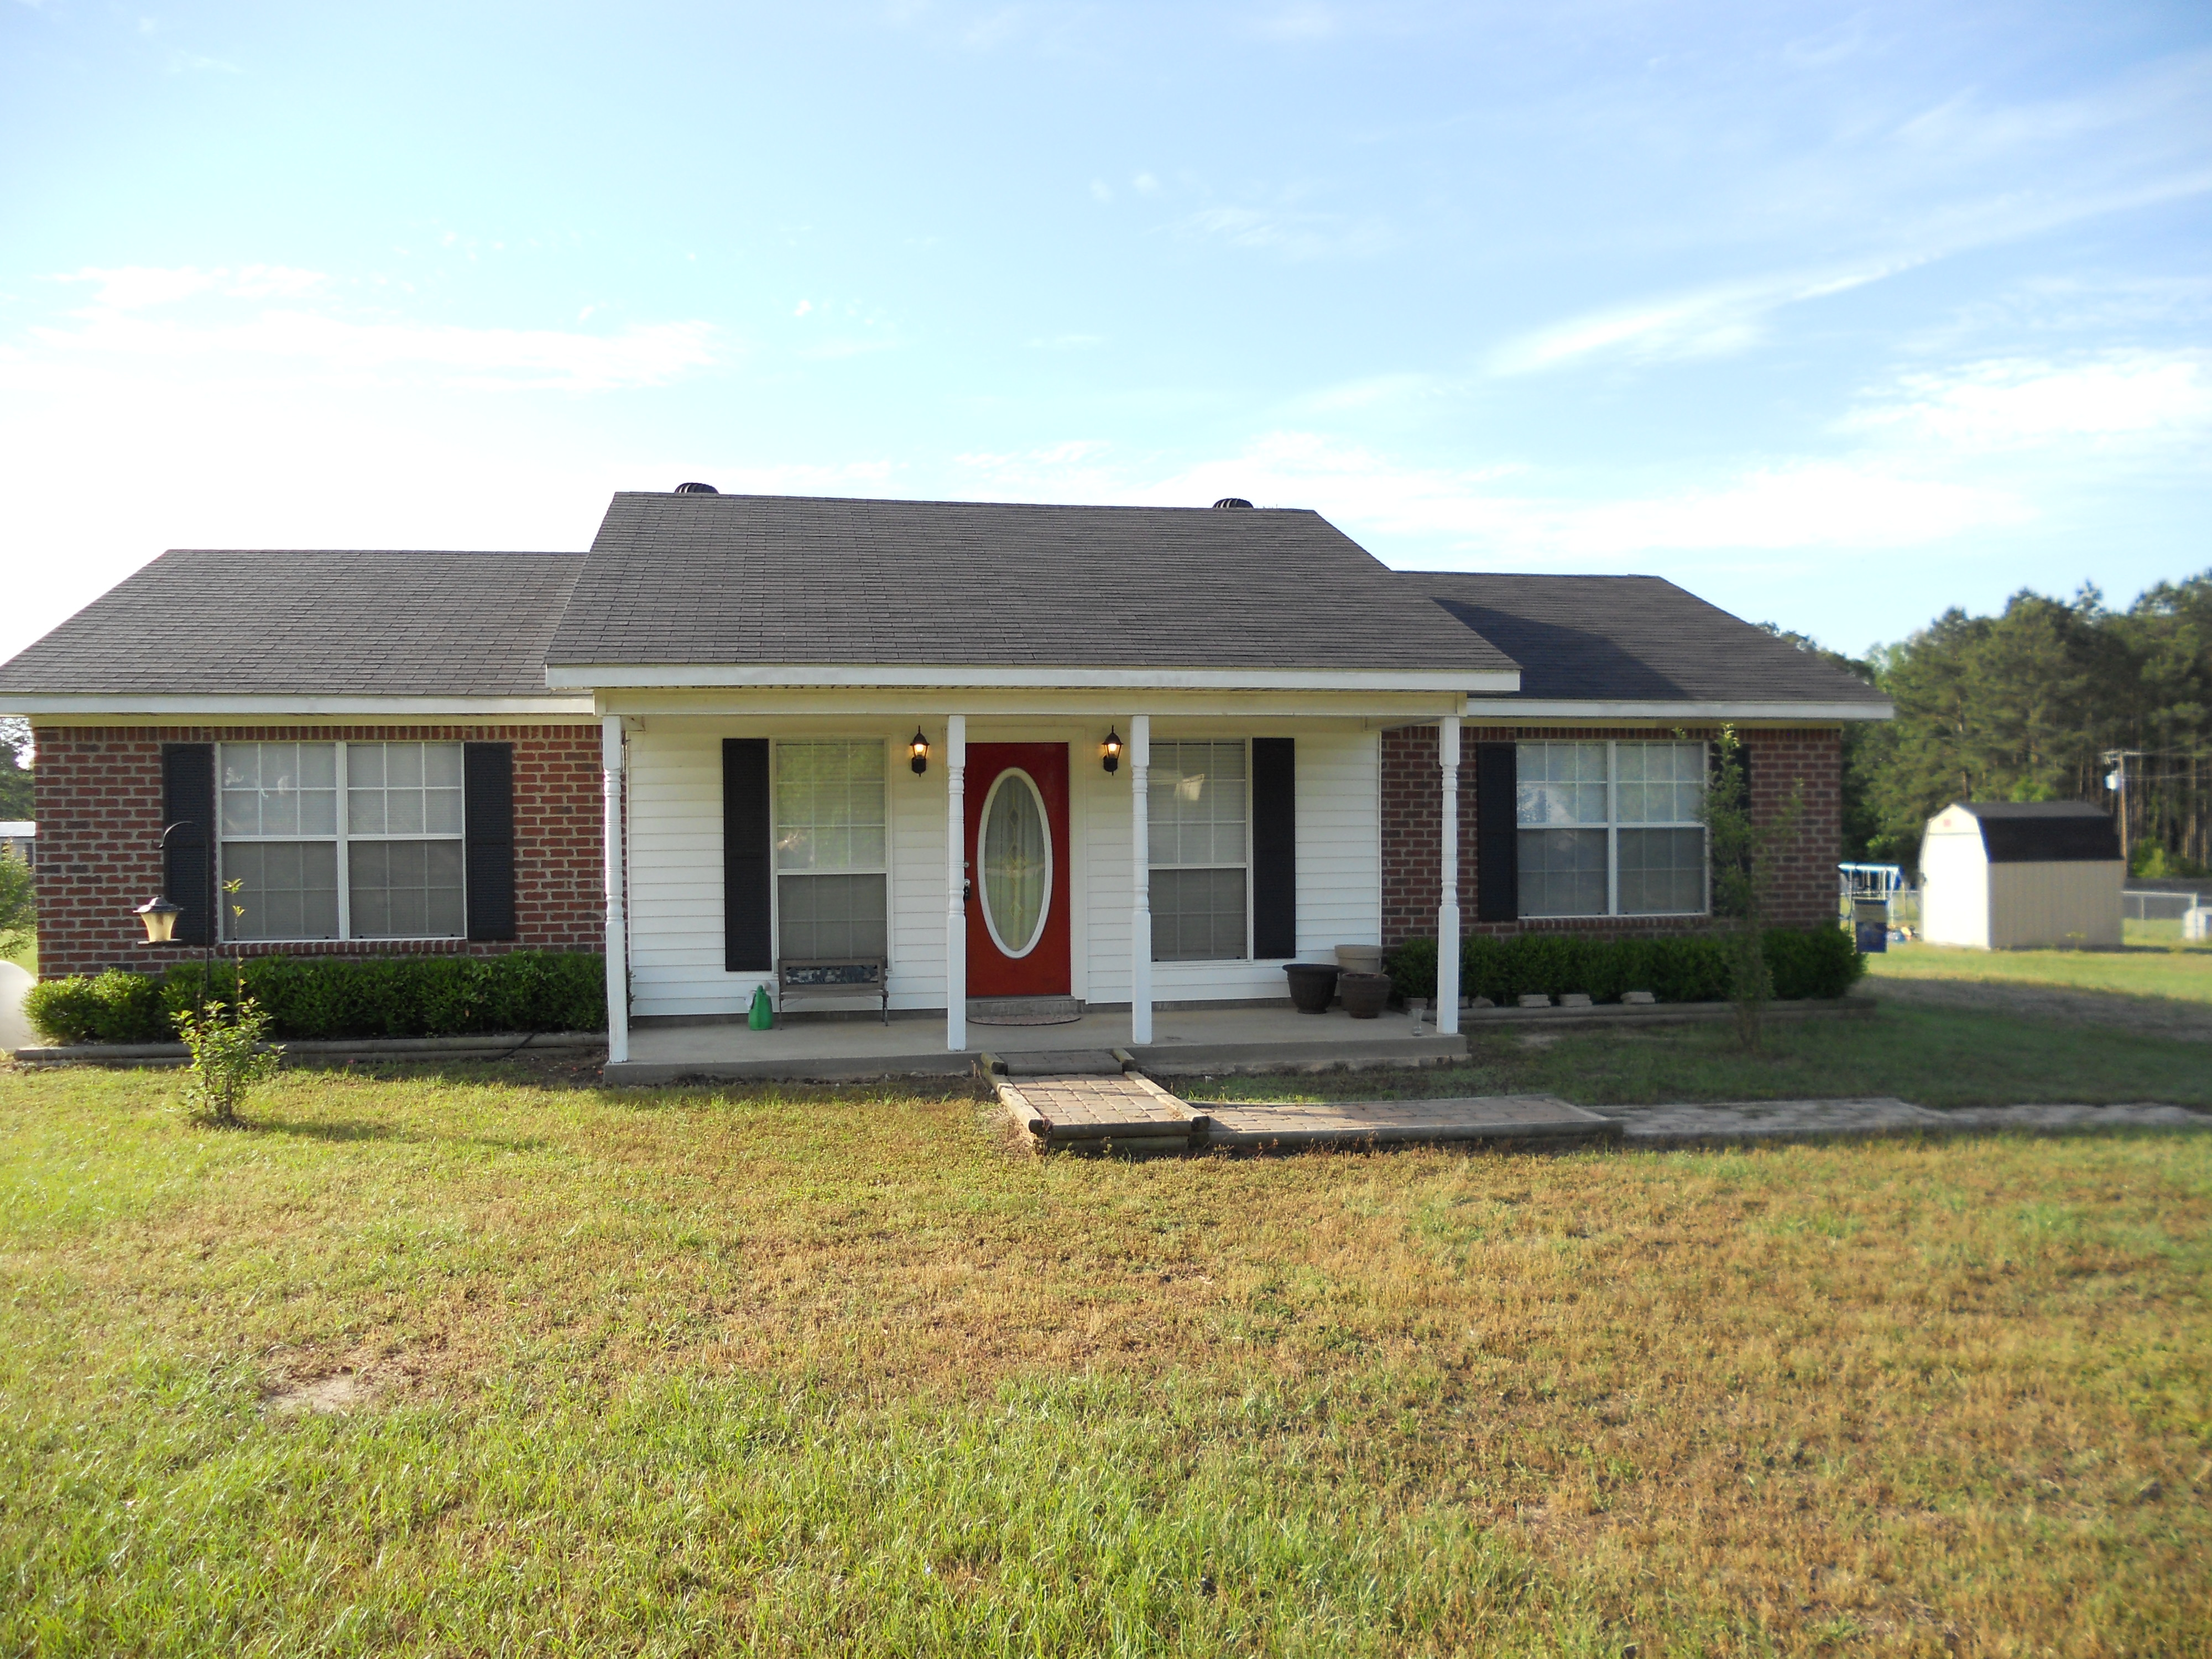 Primary photo for: 149048. Located at 199 Cedar Hill West Monroe LA 71238